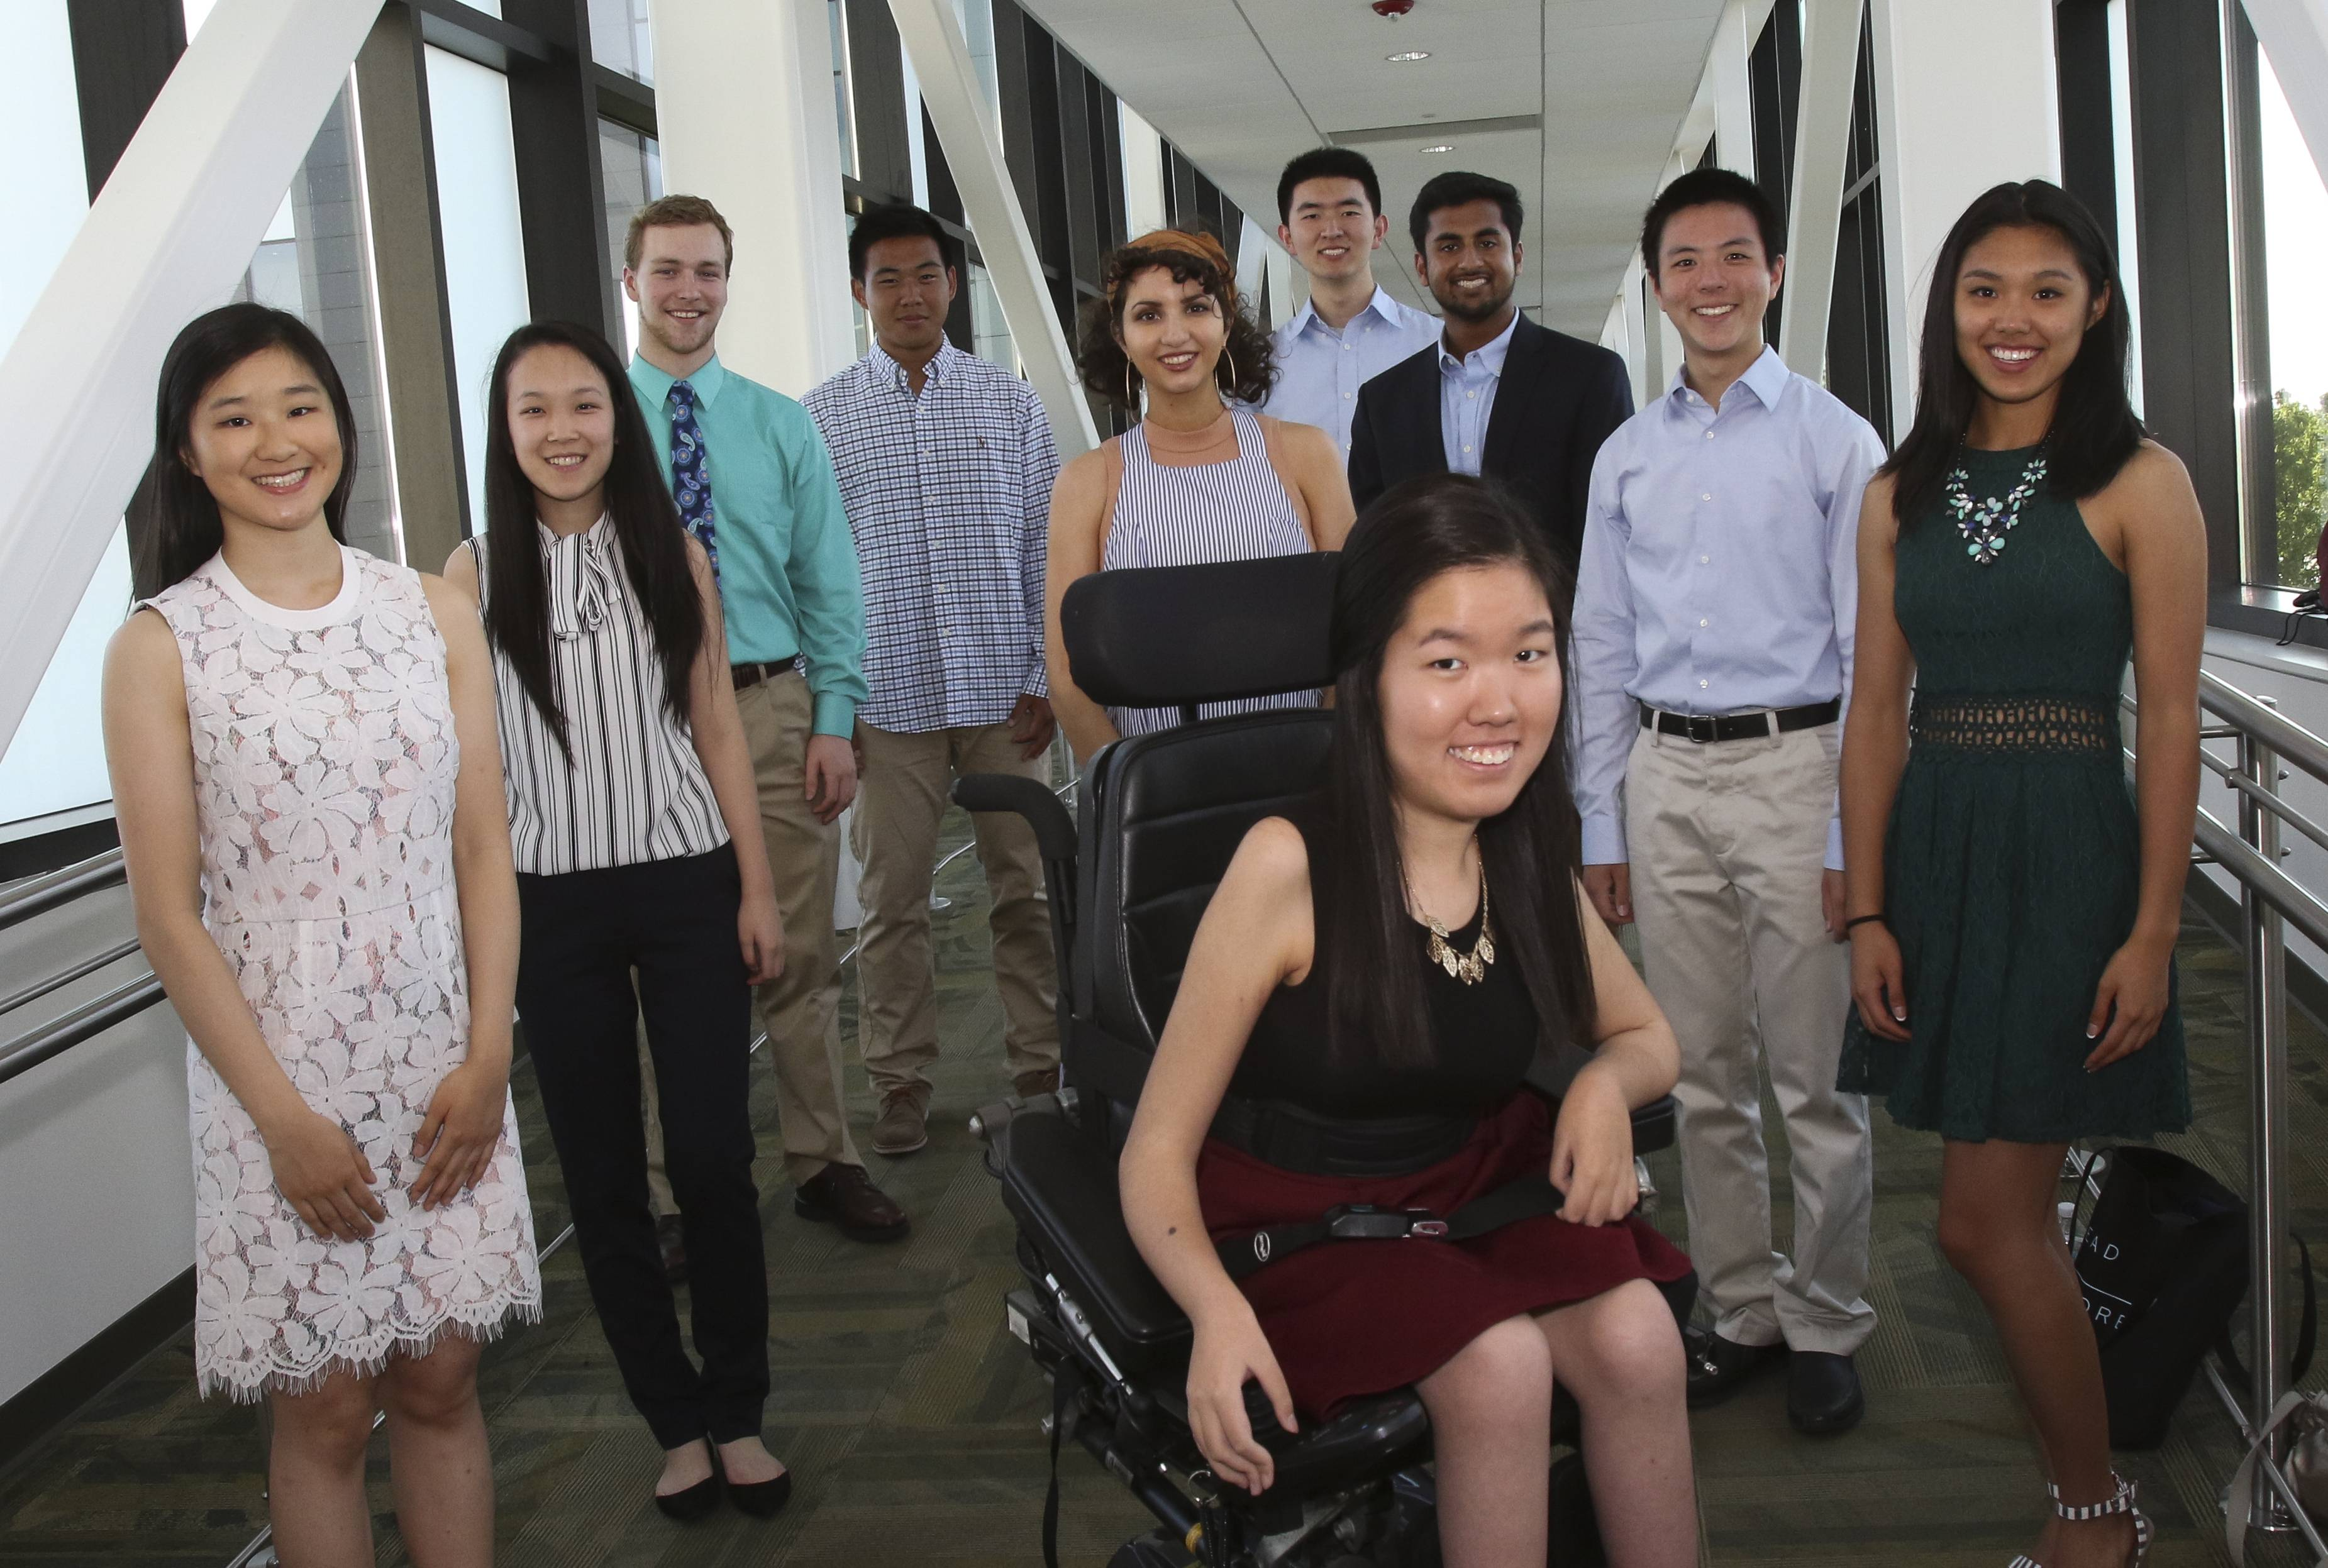 Ten students have been chosen for the 2017 Daily Herald Academic Team for DuPage County. Front and center is Jungin Angie Lee of Metea Valley. Left to right in the back are Grace Linrui Hong, Neuqua Valley; Whitney Jin, Waubonsie Valley; Stephen Bean, Glenbard South; William Zhang, Naperville Central; Emma Wilson, Downers Grove North; Rick Li, Naperville Central; James Mathew, Hinsdale Central; Kelvin Li, Naperville North; and Vivian Yuan, Naperville North.